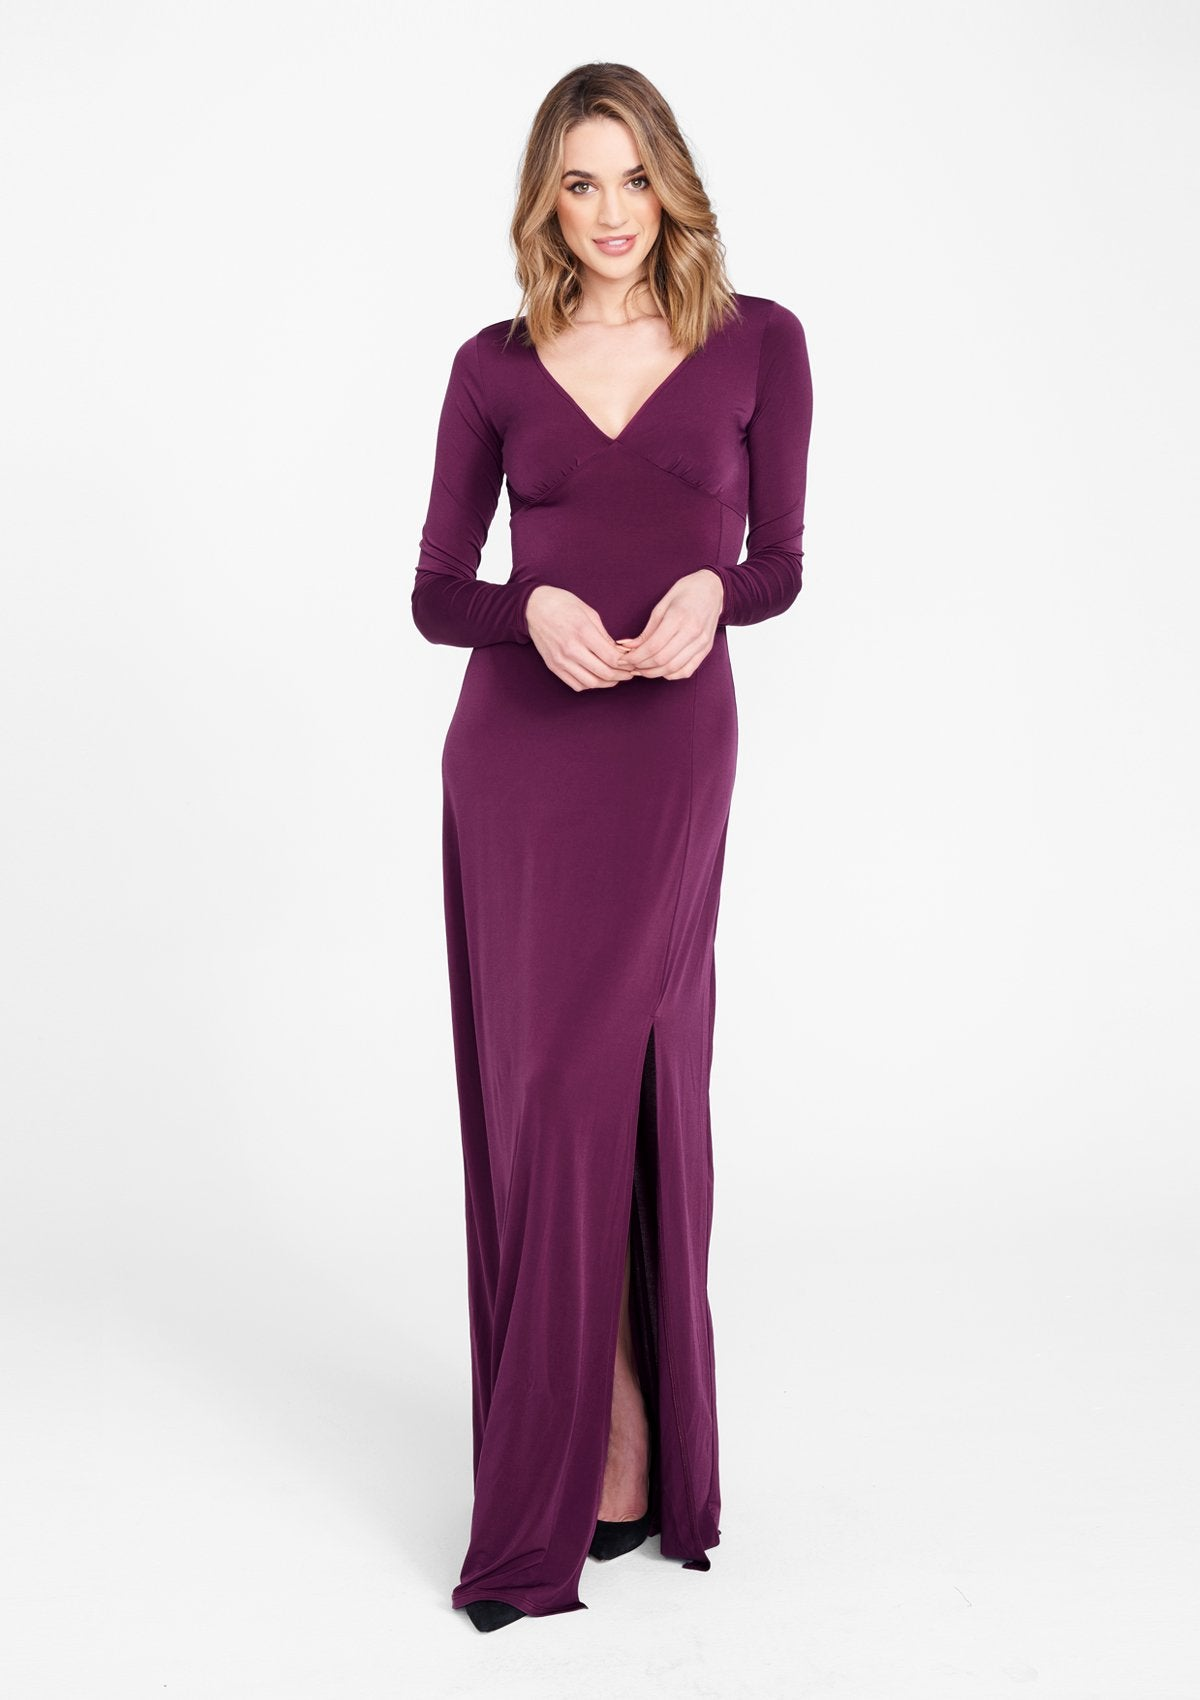 Alloy Apparel Tall Maxi Slit Dress for Women in Plum Size 2XL   Polyester